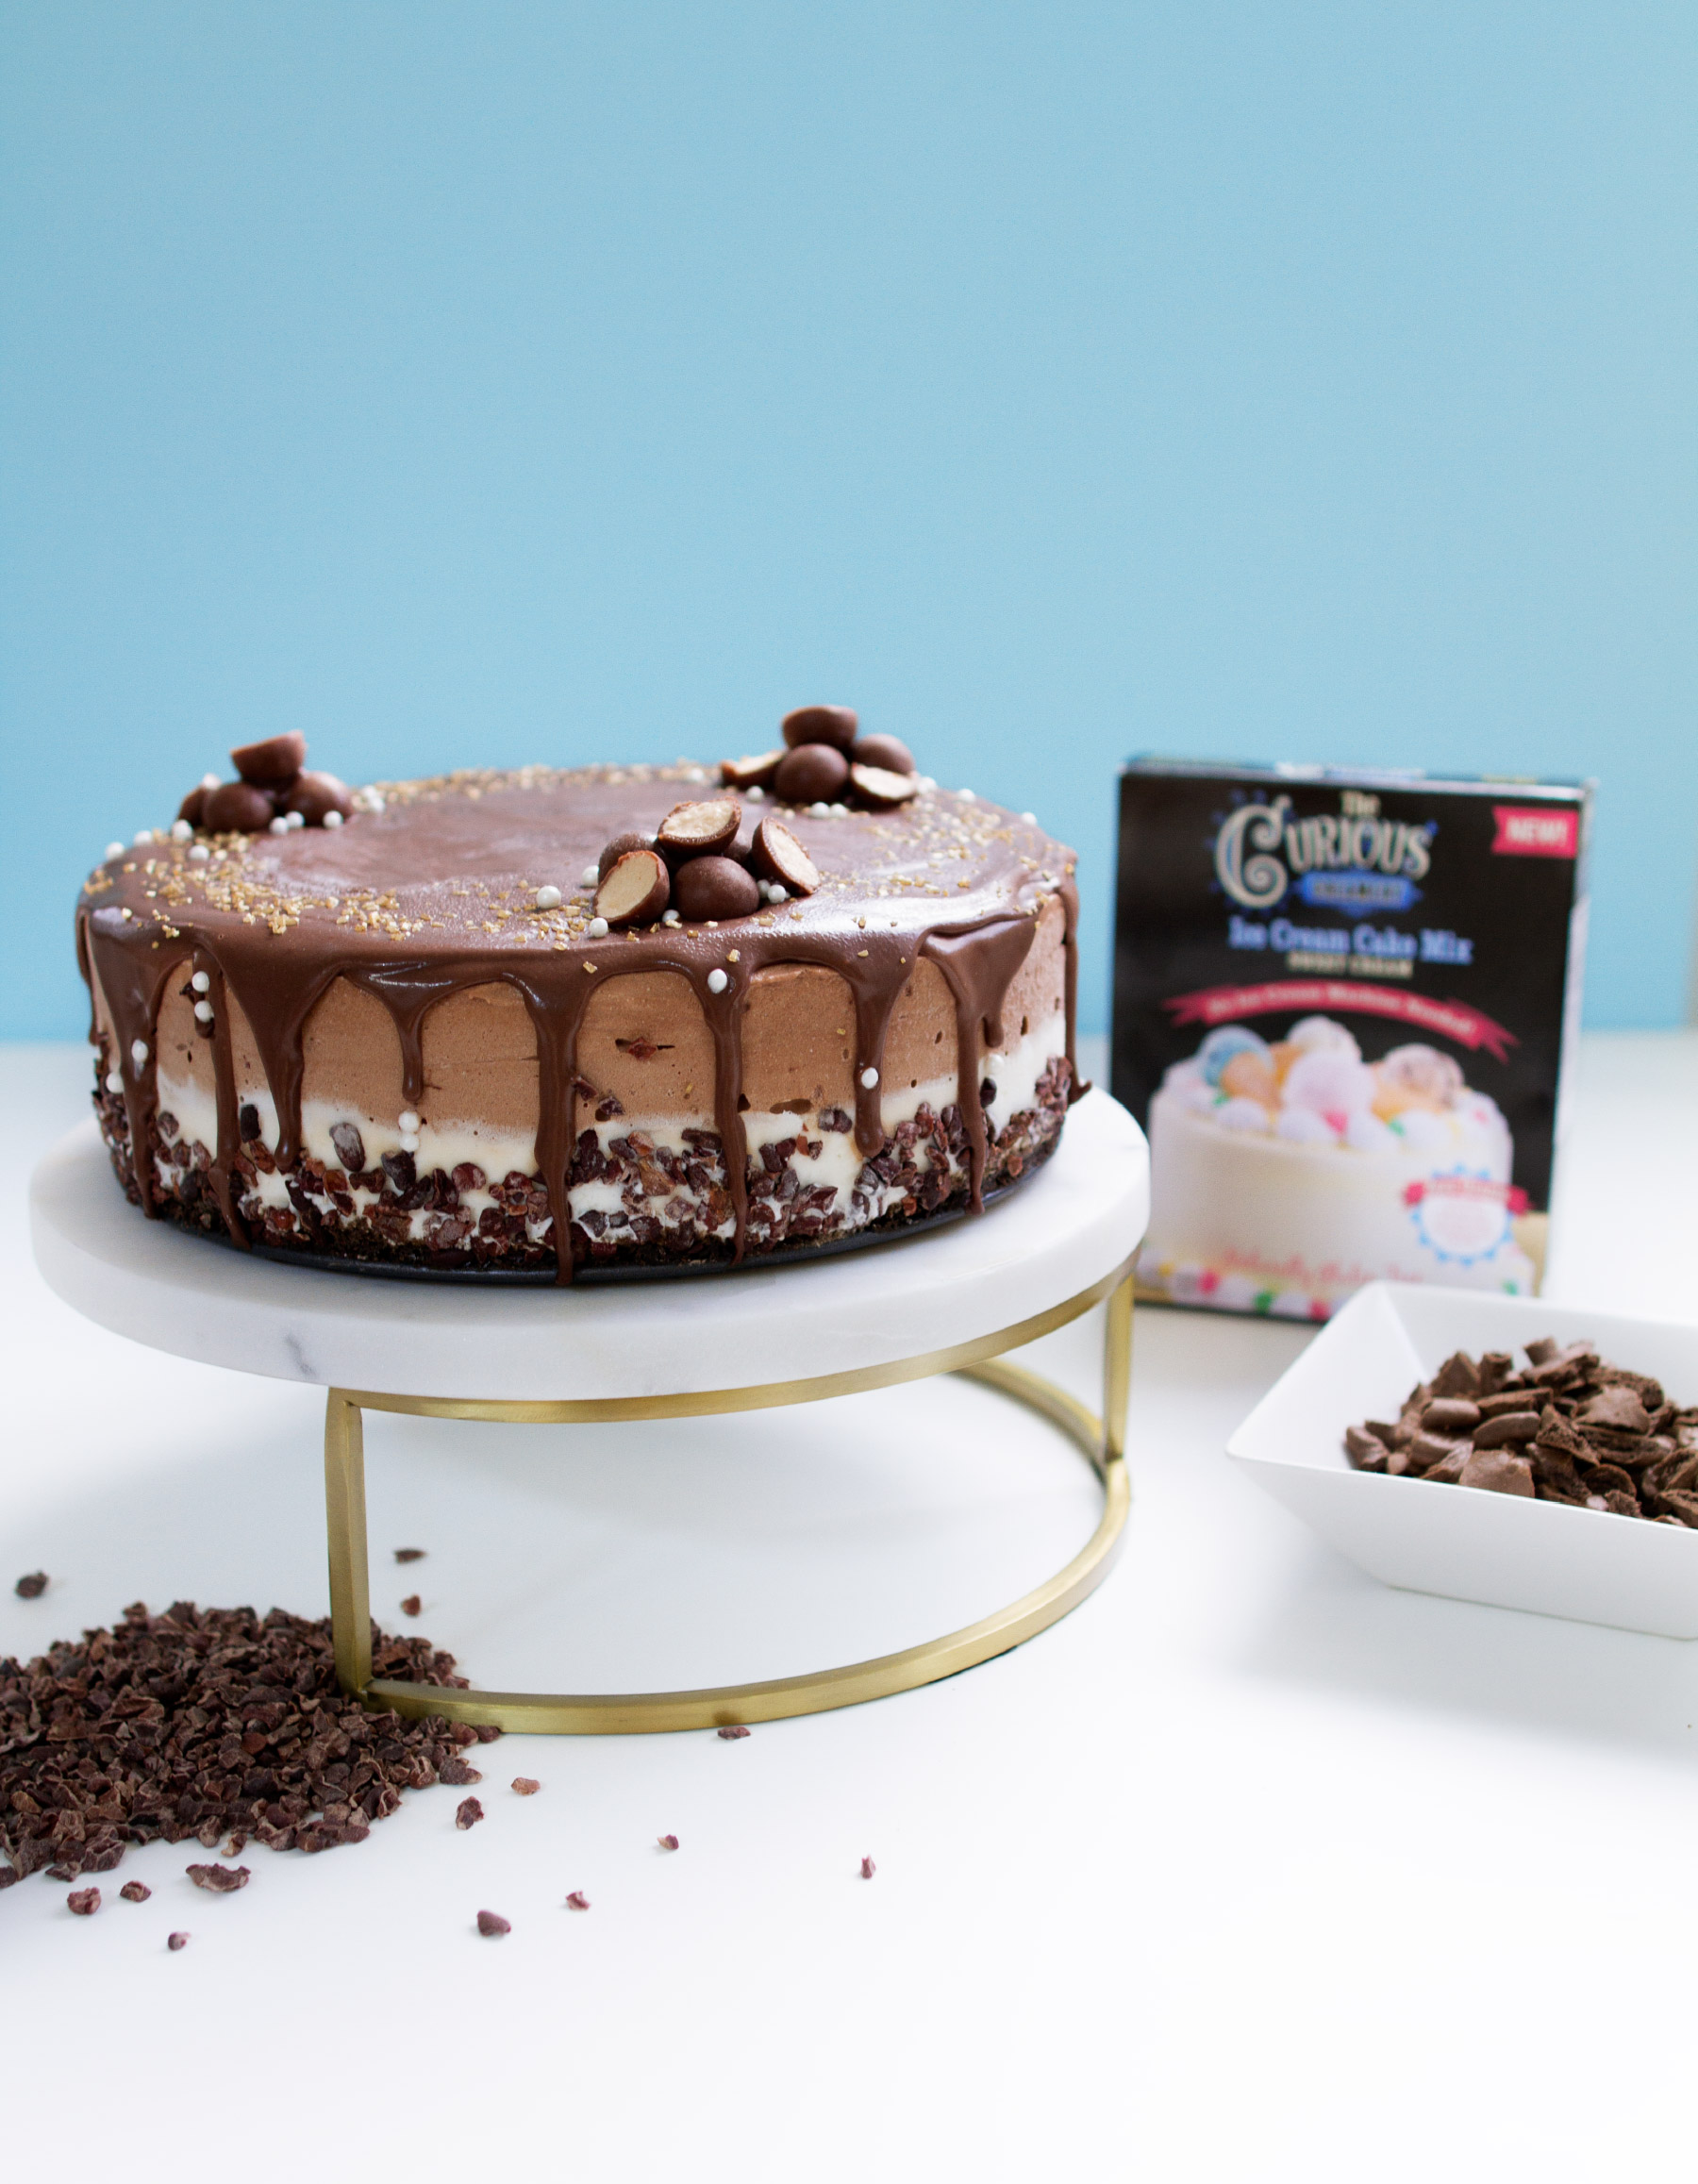 Chocolate ice cream cake with chocolate icing